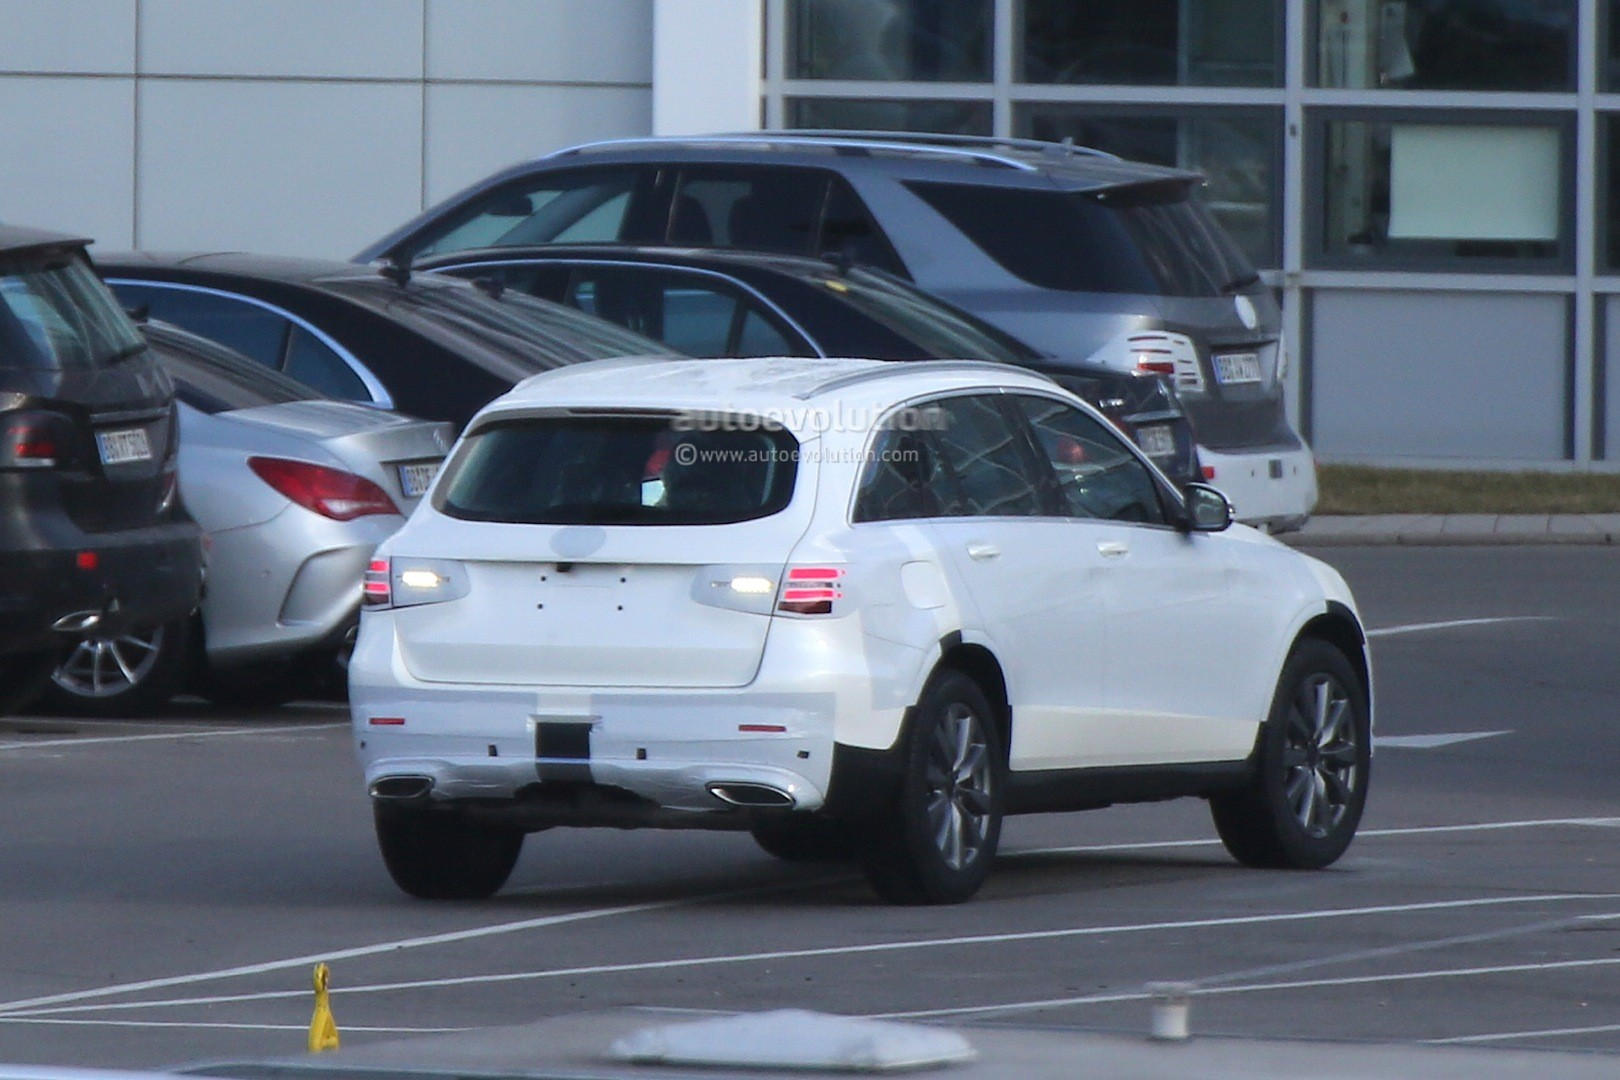 Audi Latest Models >> Mercedes-Benz GLC Spied With Minimal Camouflage, Including 450 AMG Sport Model - autoevolution